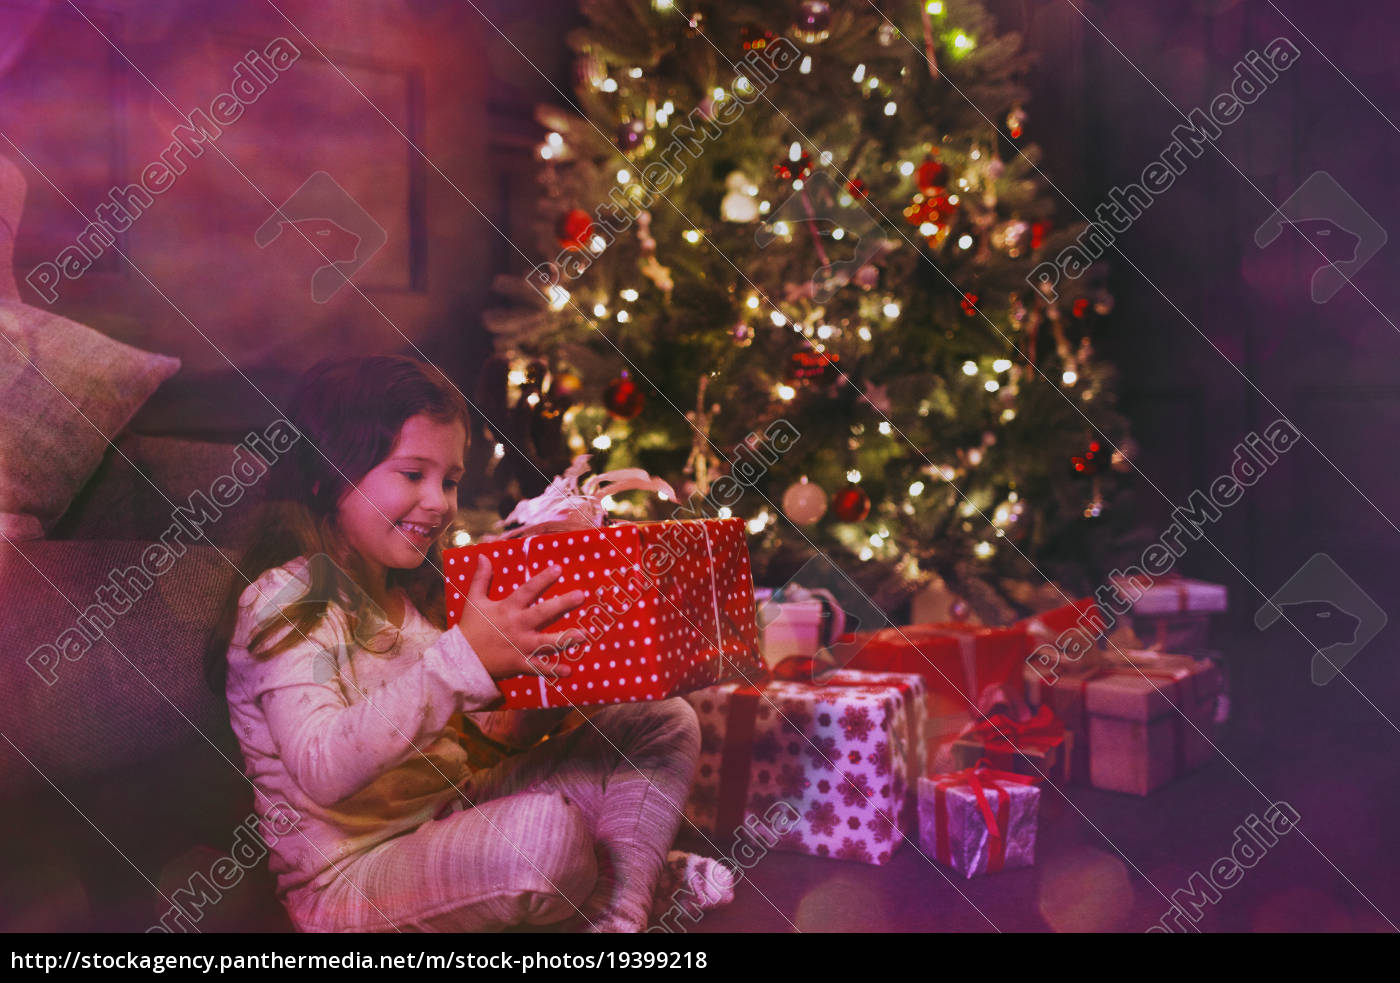 excited, girl, holding, gift, next, to - 19399218